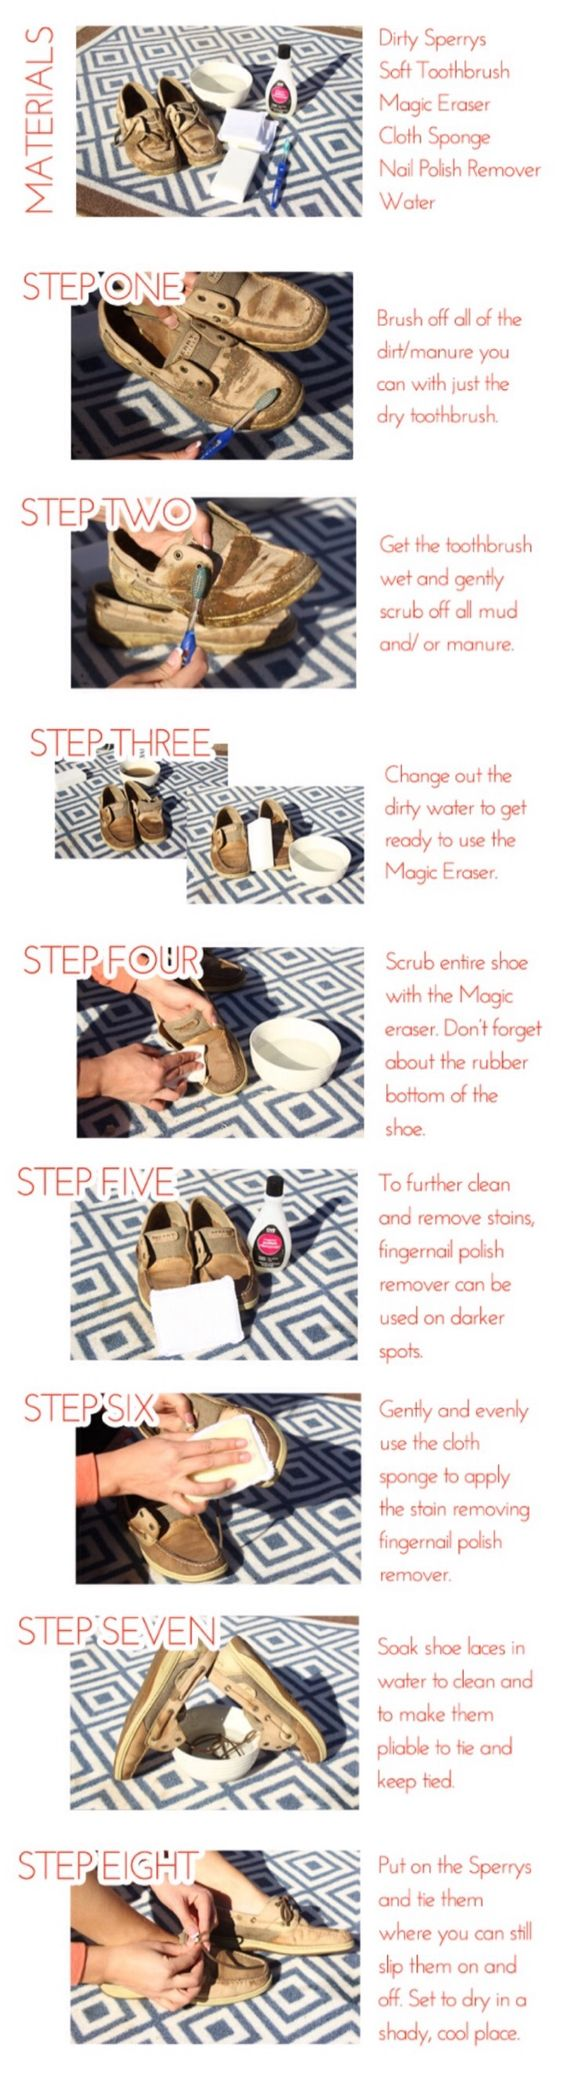 How to clean up my sperrys after show season!